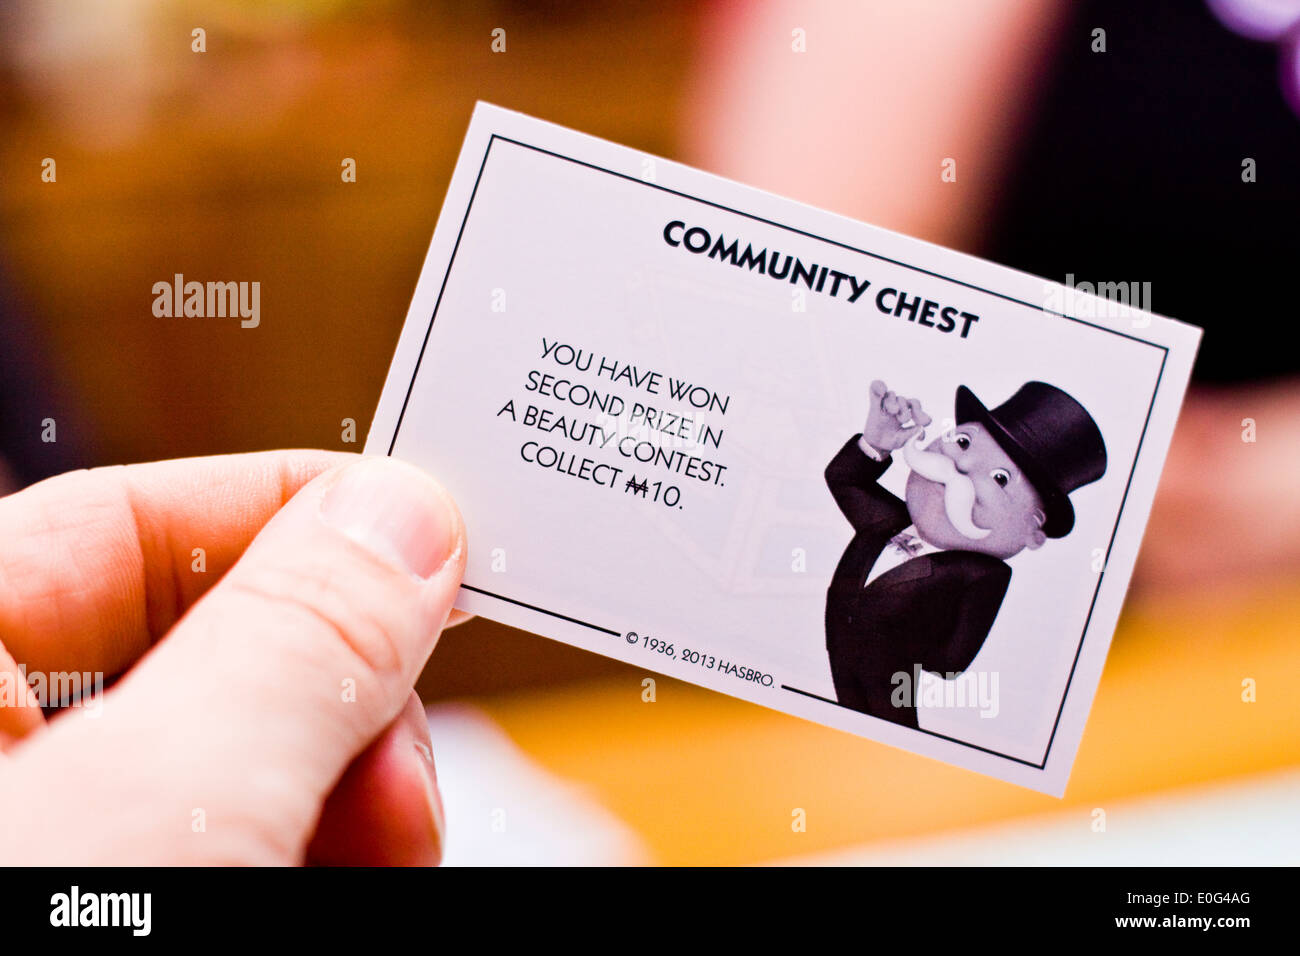 A community chest card from a game of Monopoly - Stock Image